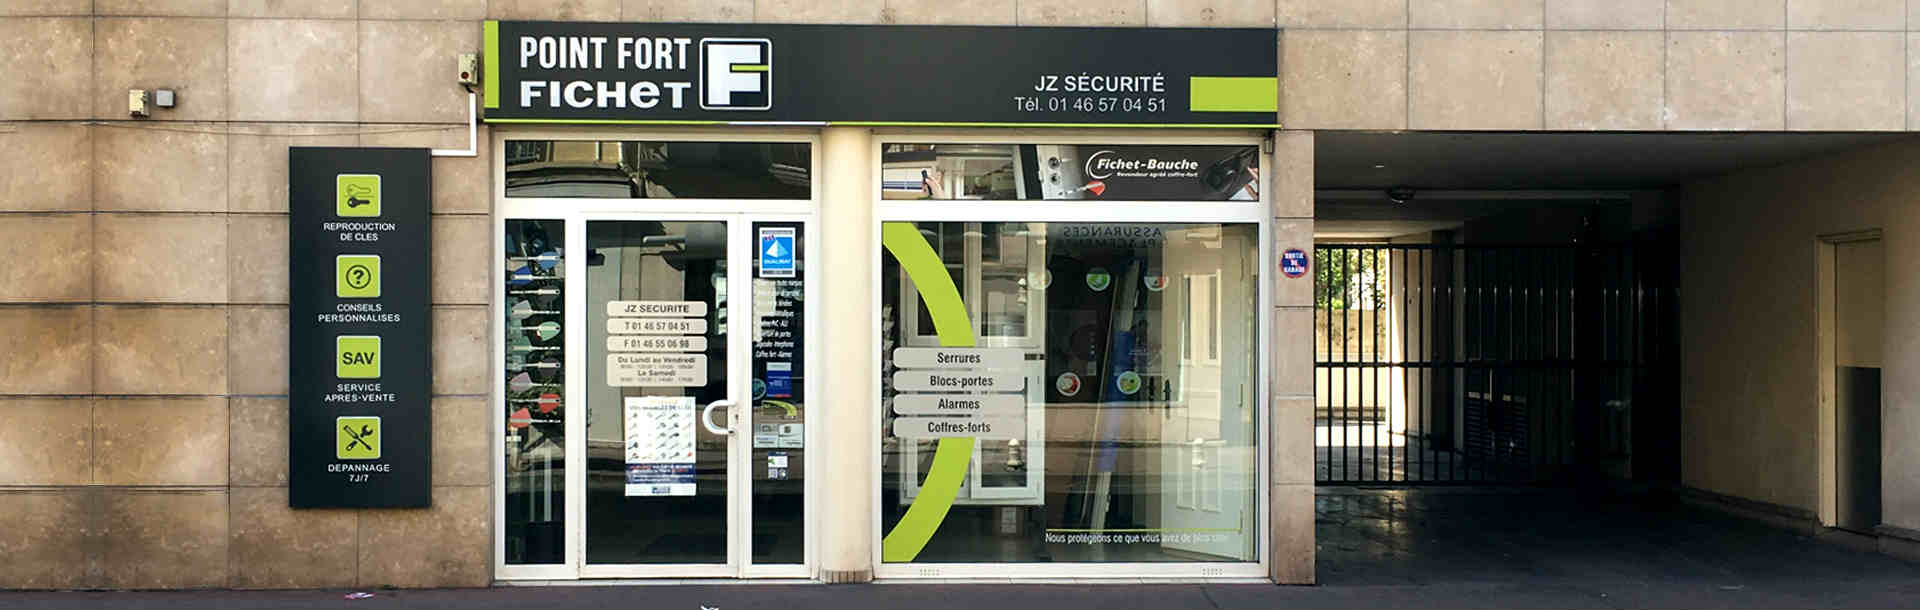 jz securite point fort fichet